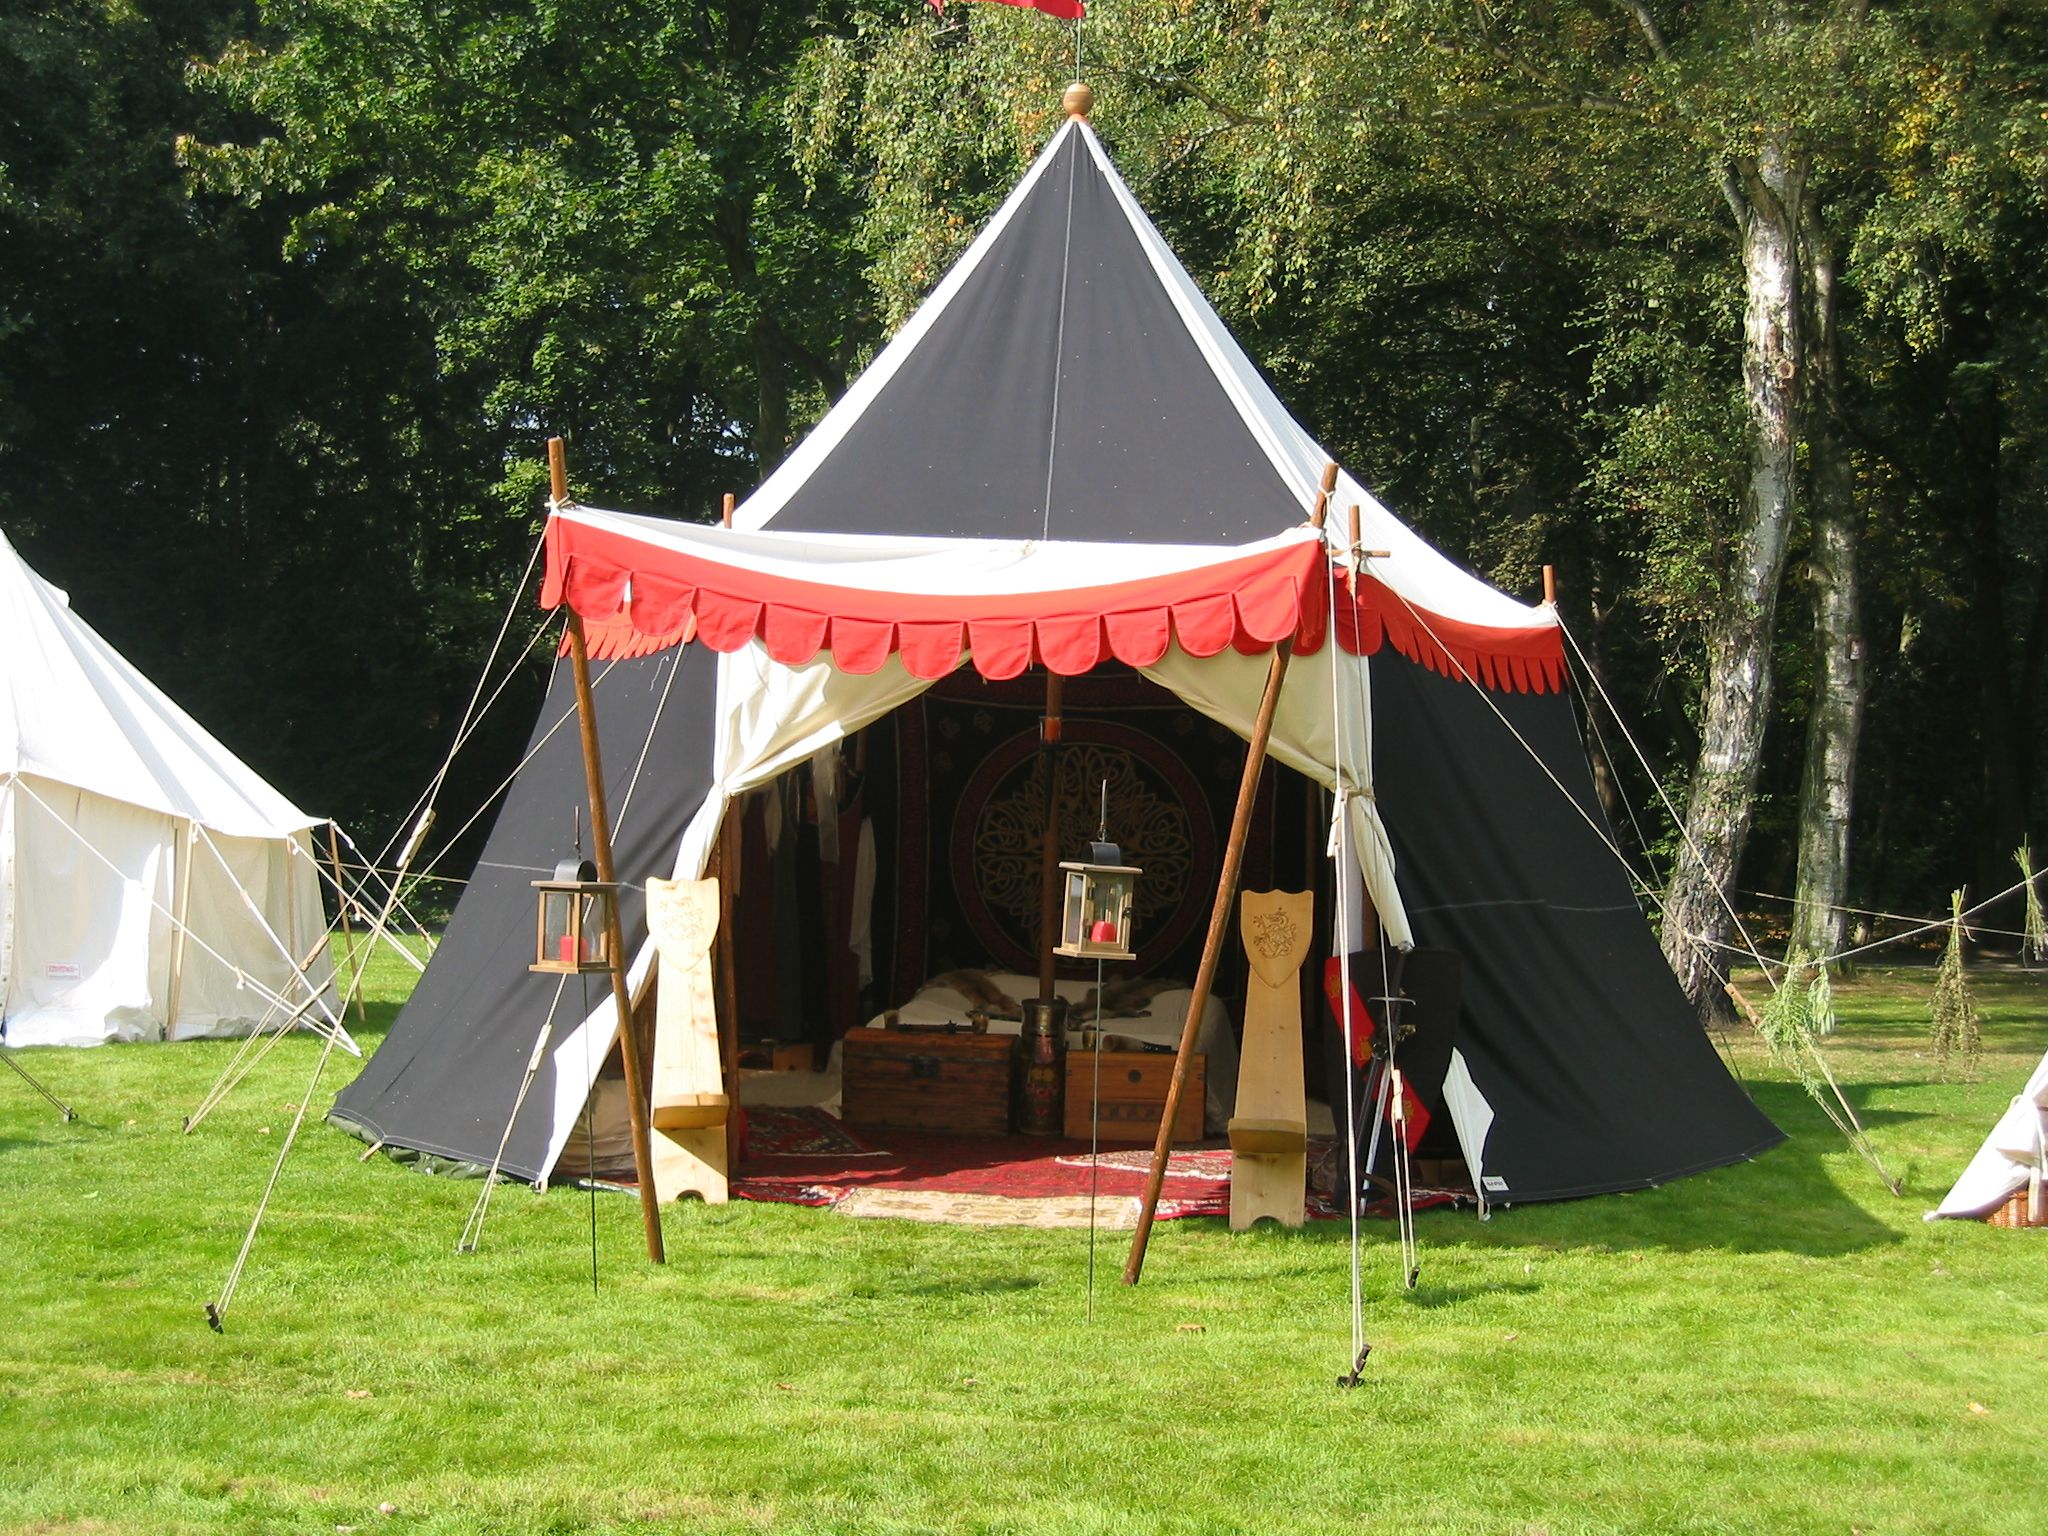 medieval tents - Google Search & medieval tents - Google Search | tents | Pinterest | Medieval ...